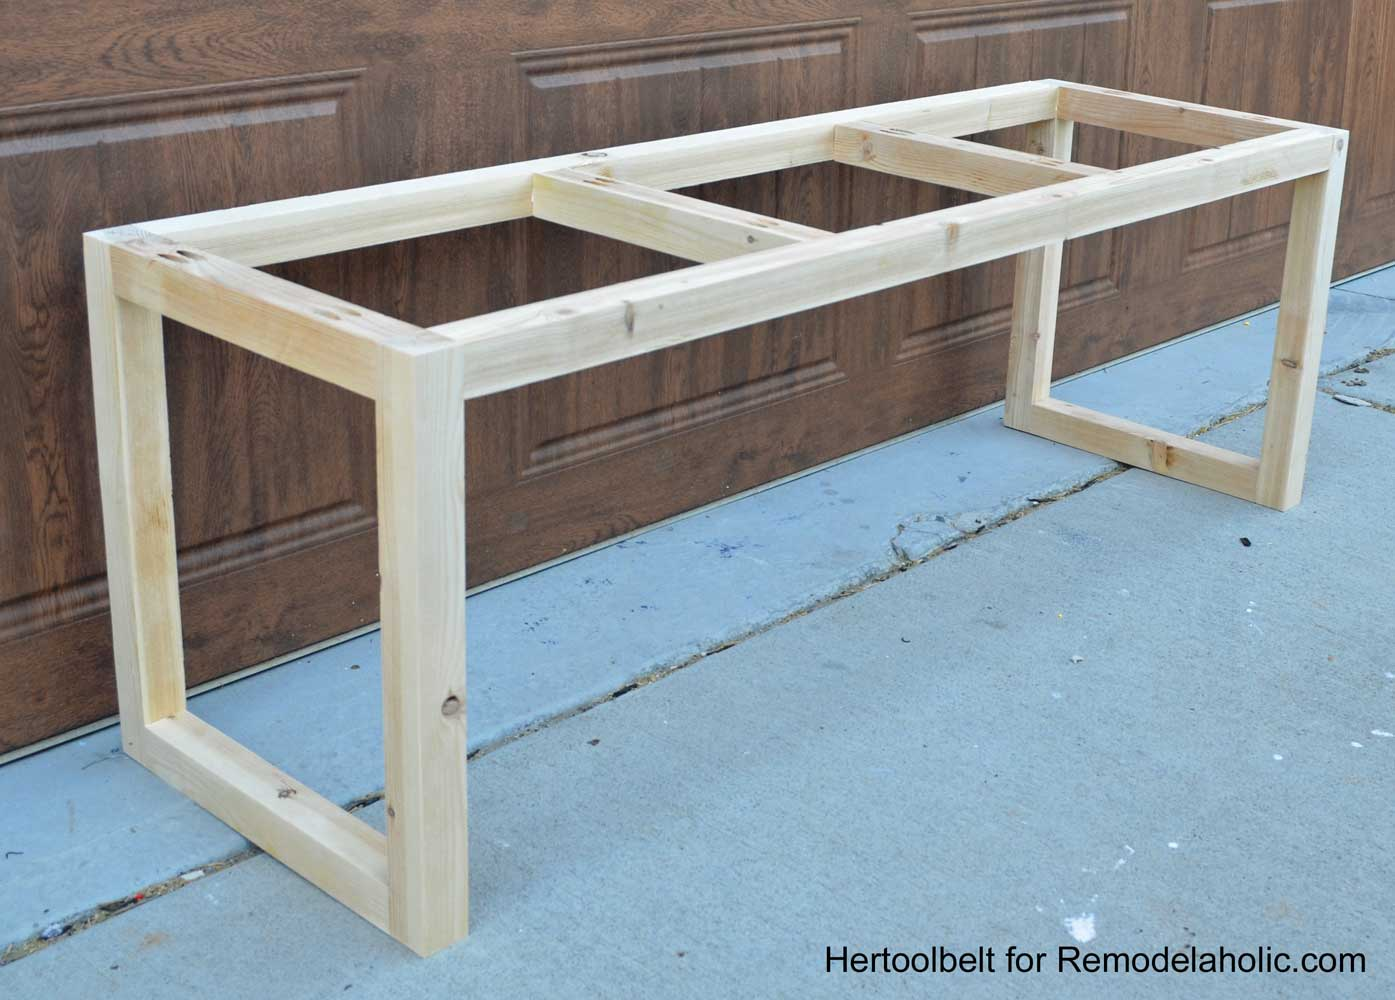 Remodelaholic | DIY Wood Chevron Bench with Box Frame